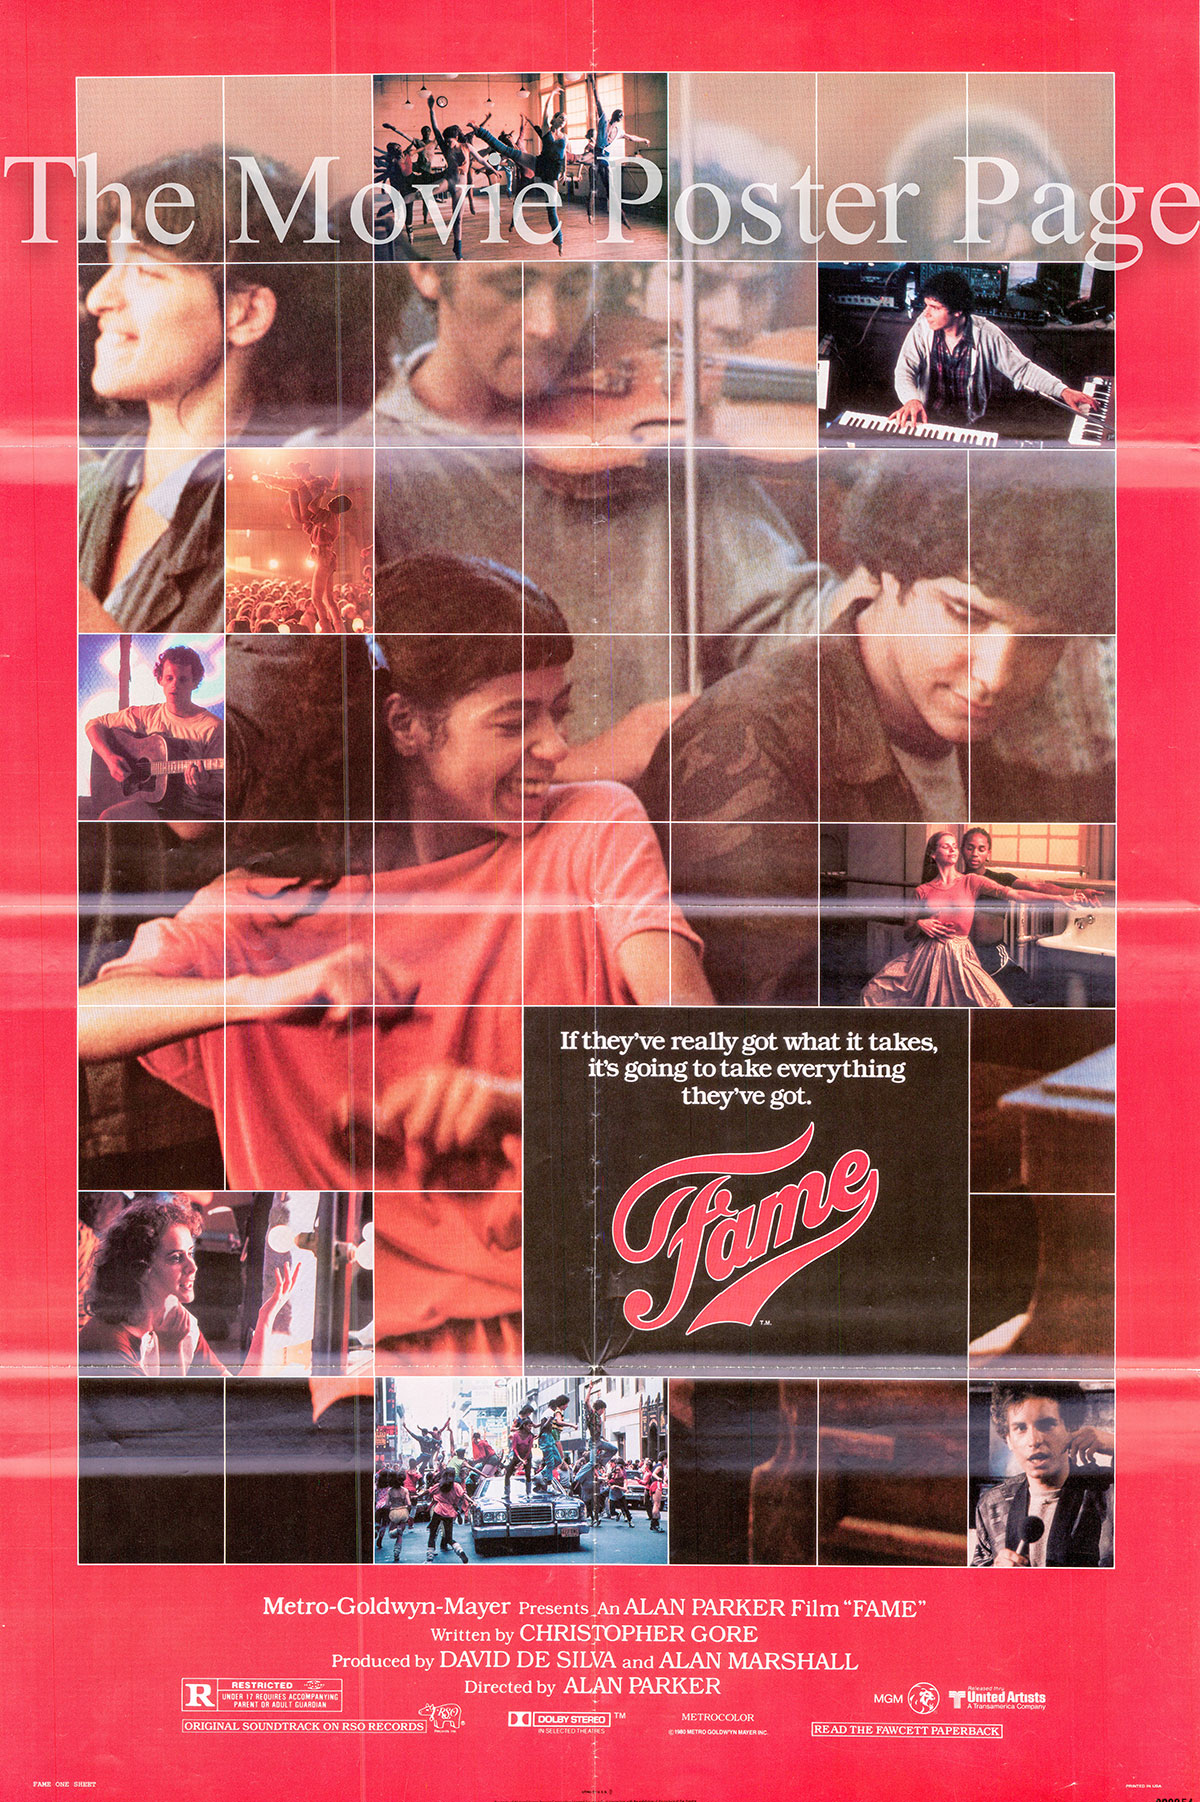 Pictured is a US one-sheet promotional poster for the 1980 Alan Parker film Fame starring Irene Cara as Coco Hernandez.